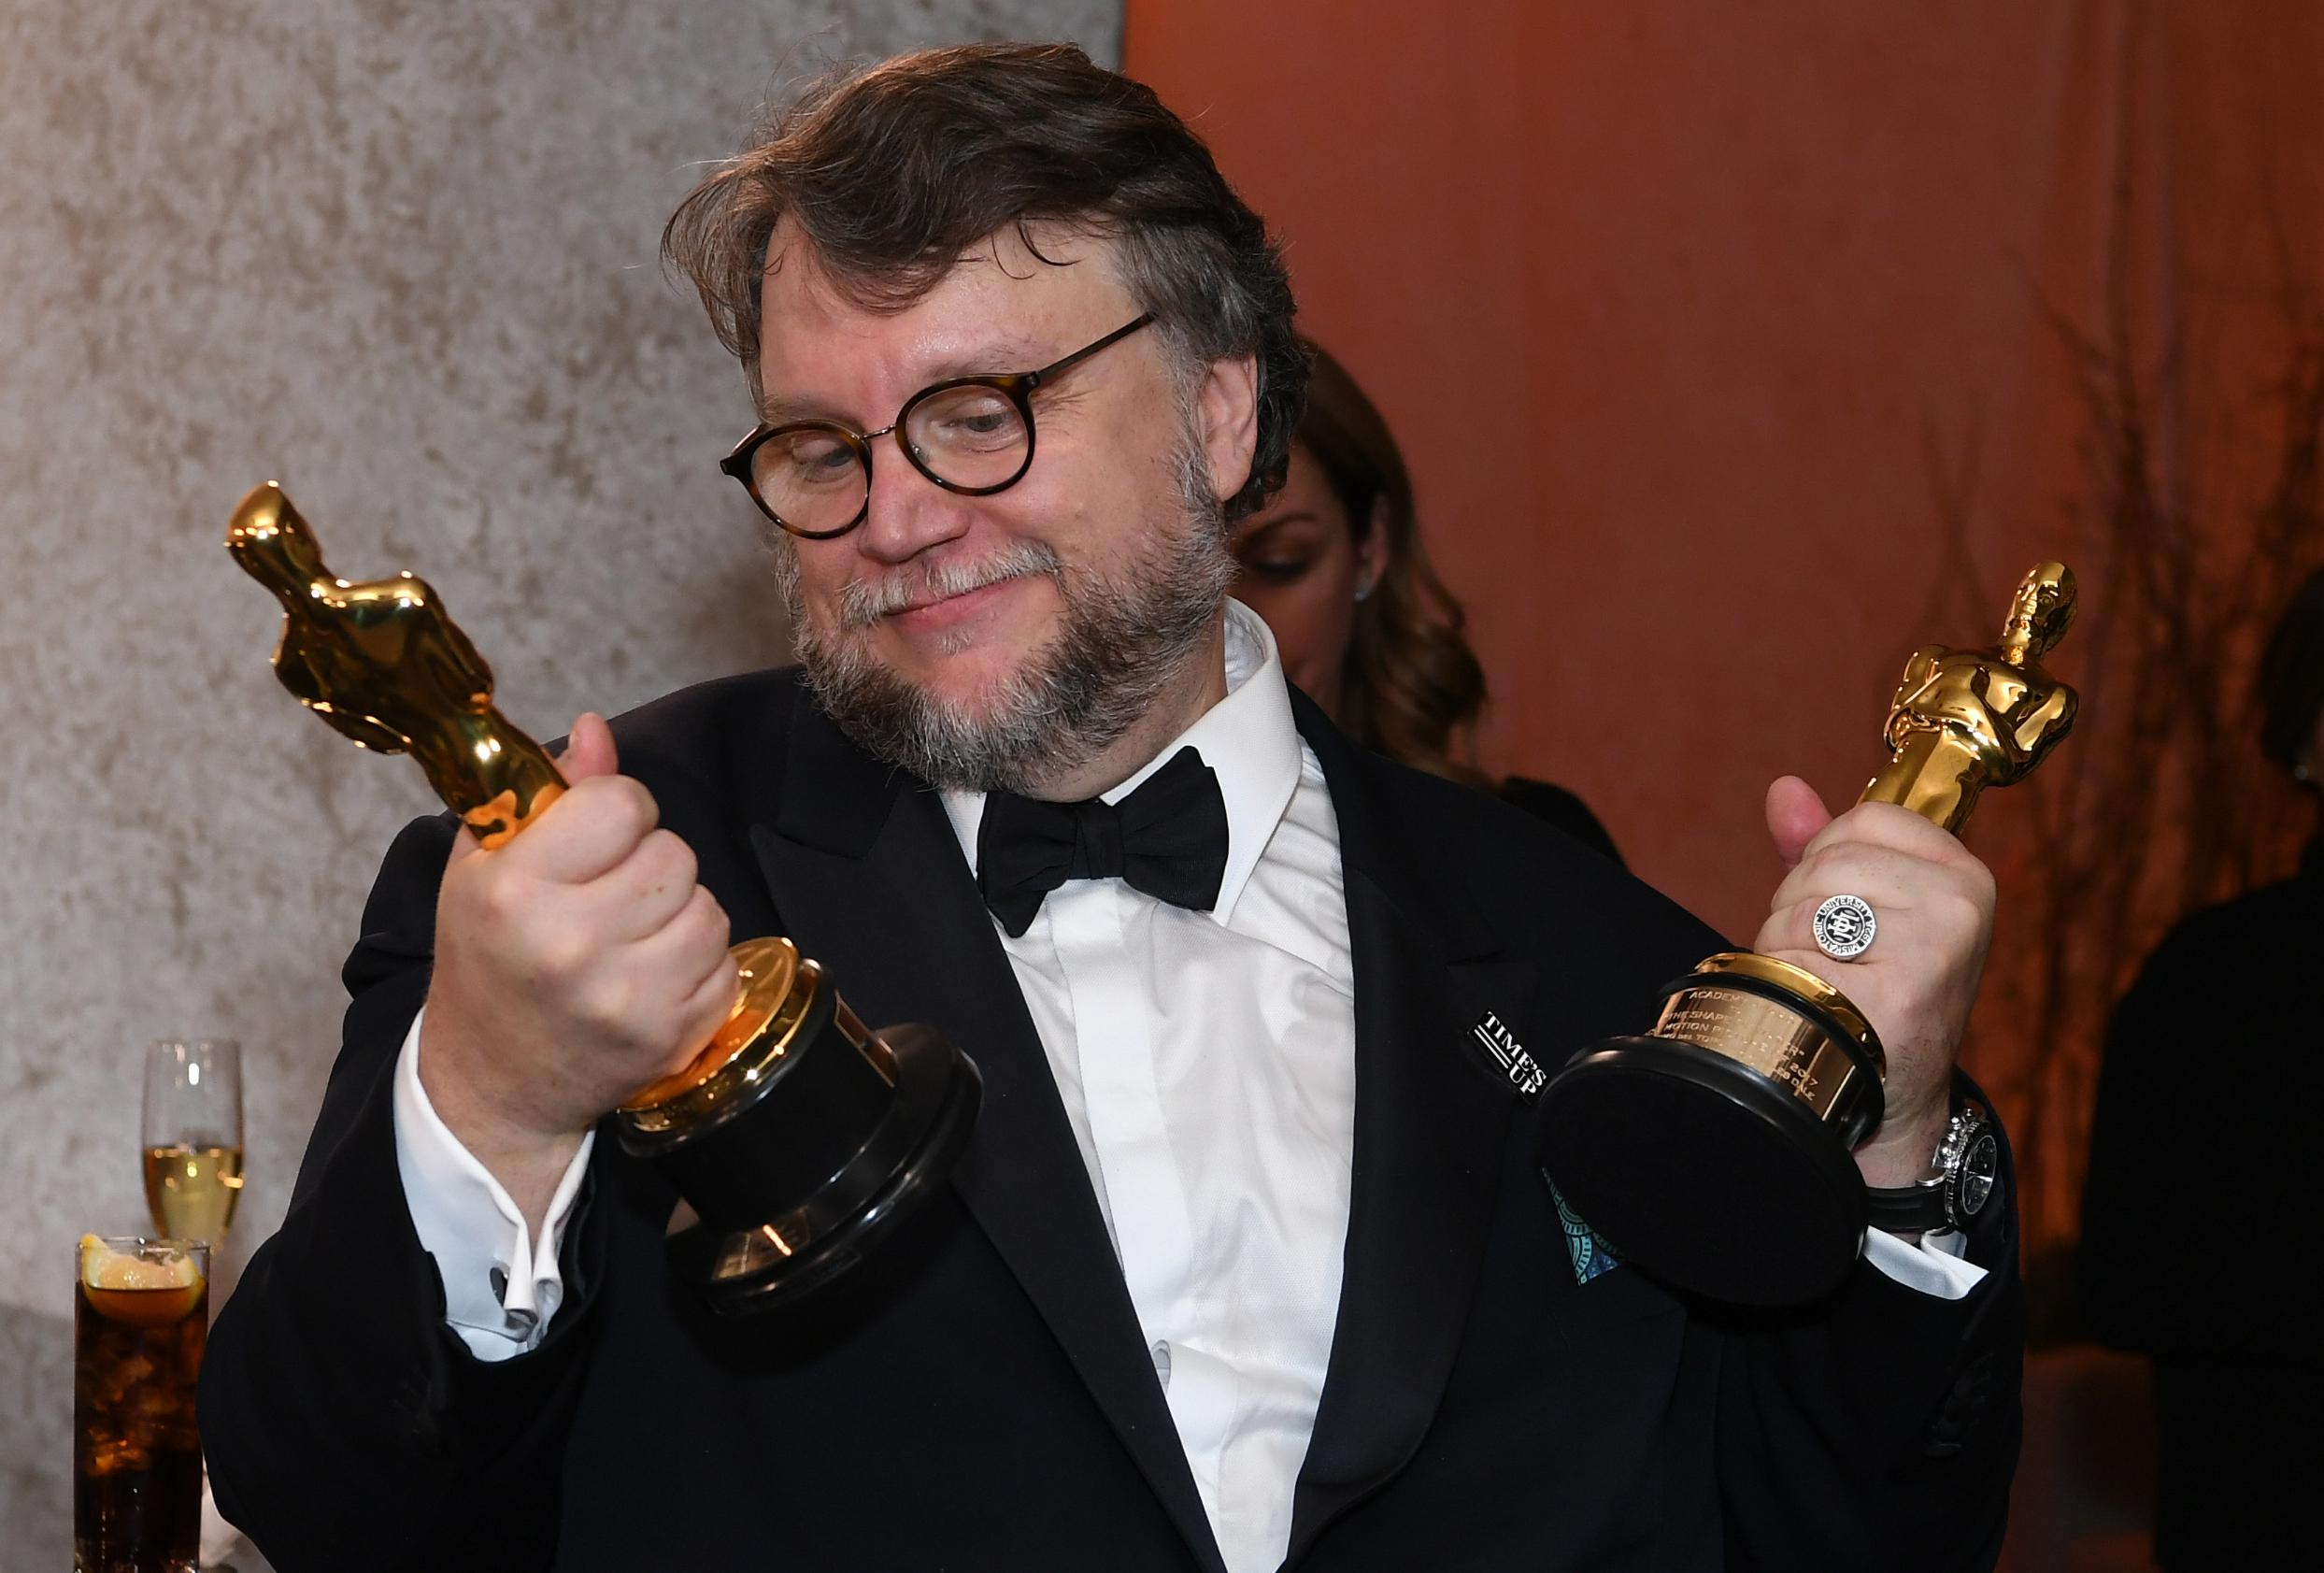 Guillermo del Toro, with an Oscar statuette in each fist.